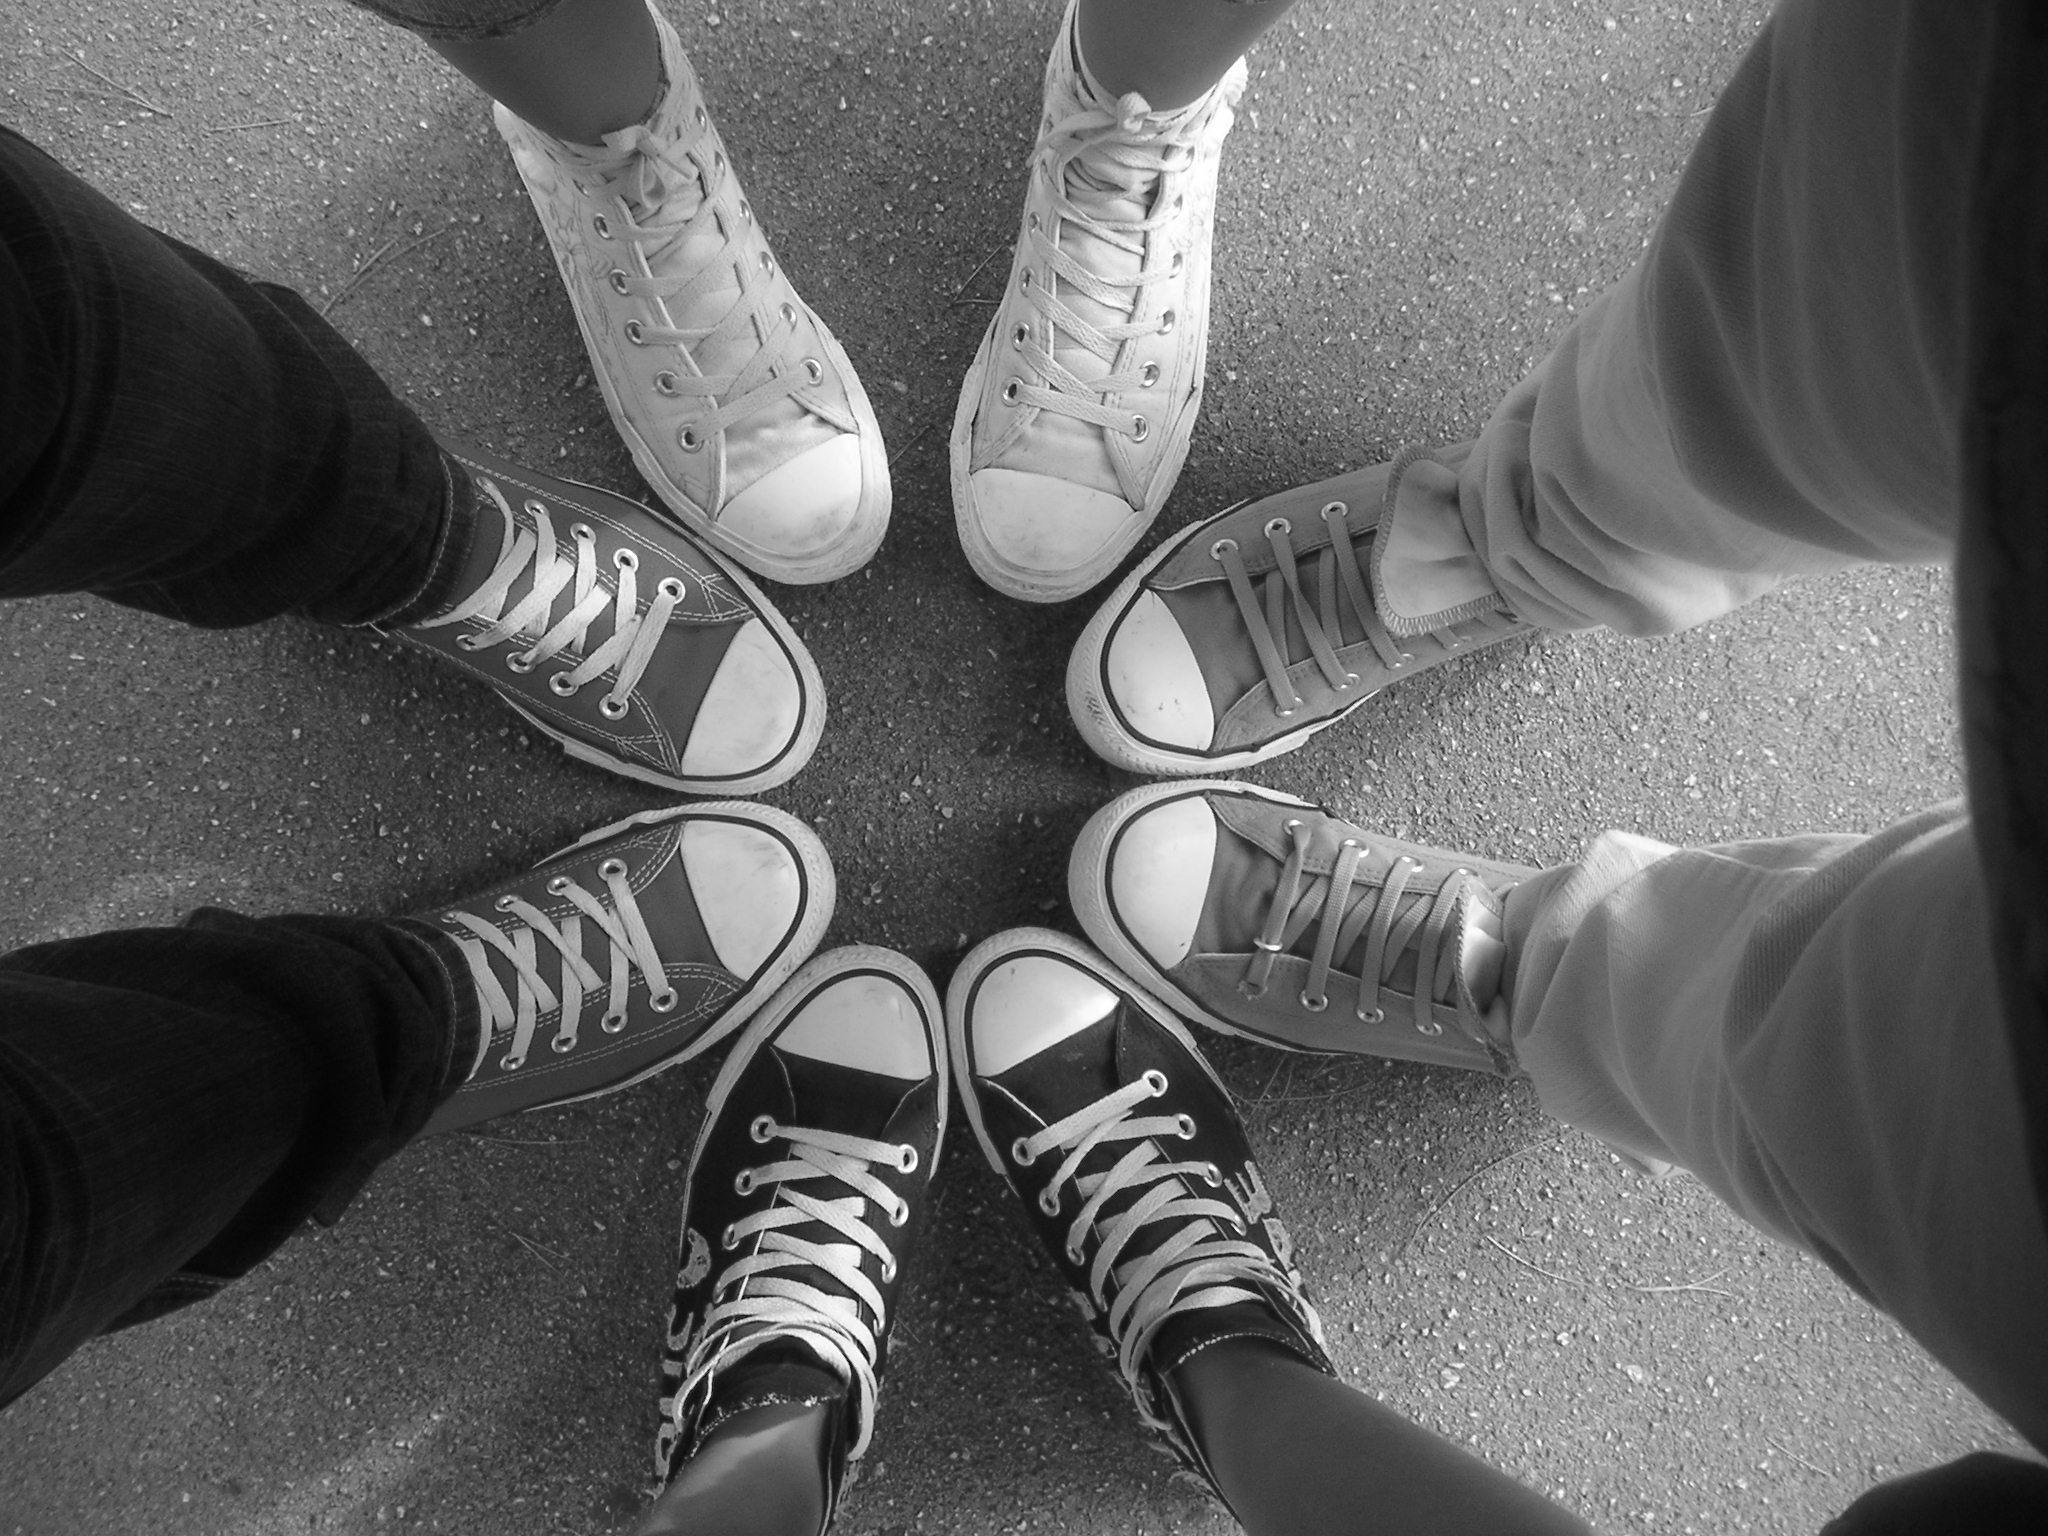 Converse Shoes Black And White In A Circle